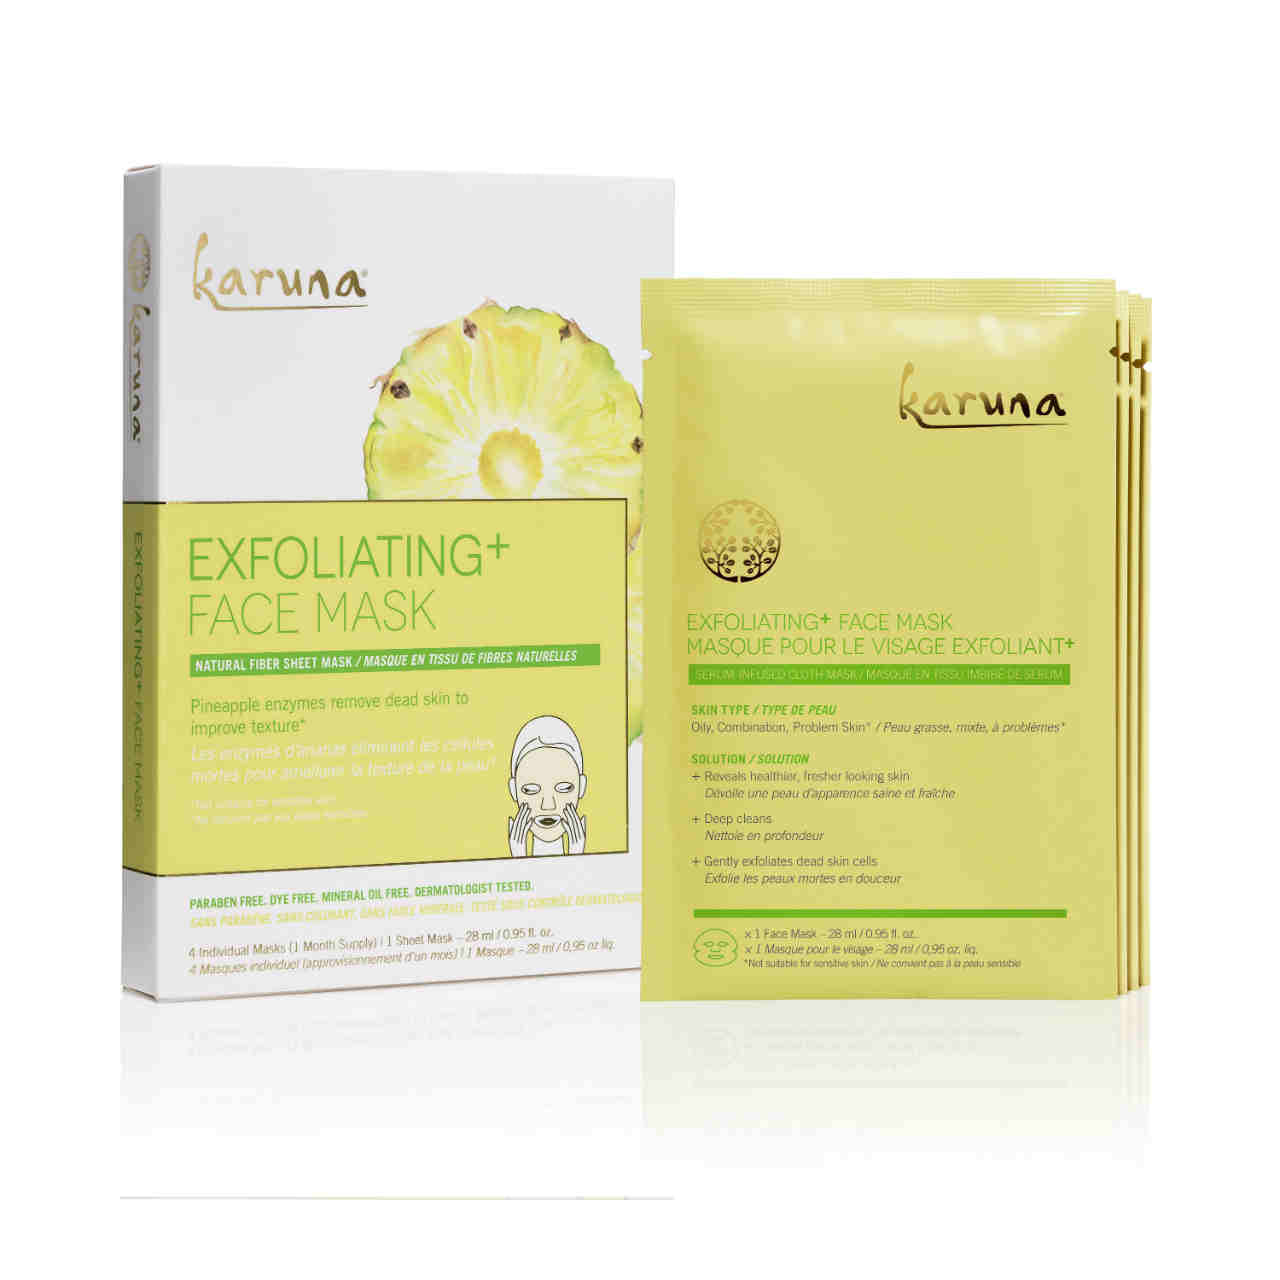 KARUNA Exfoliating+ Face Mask Box of 4